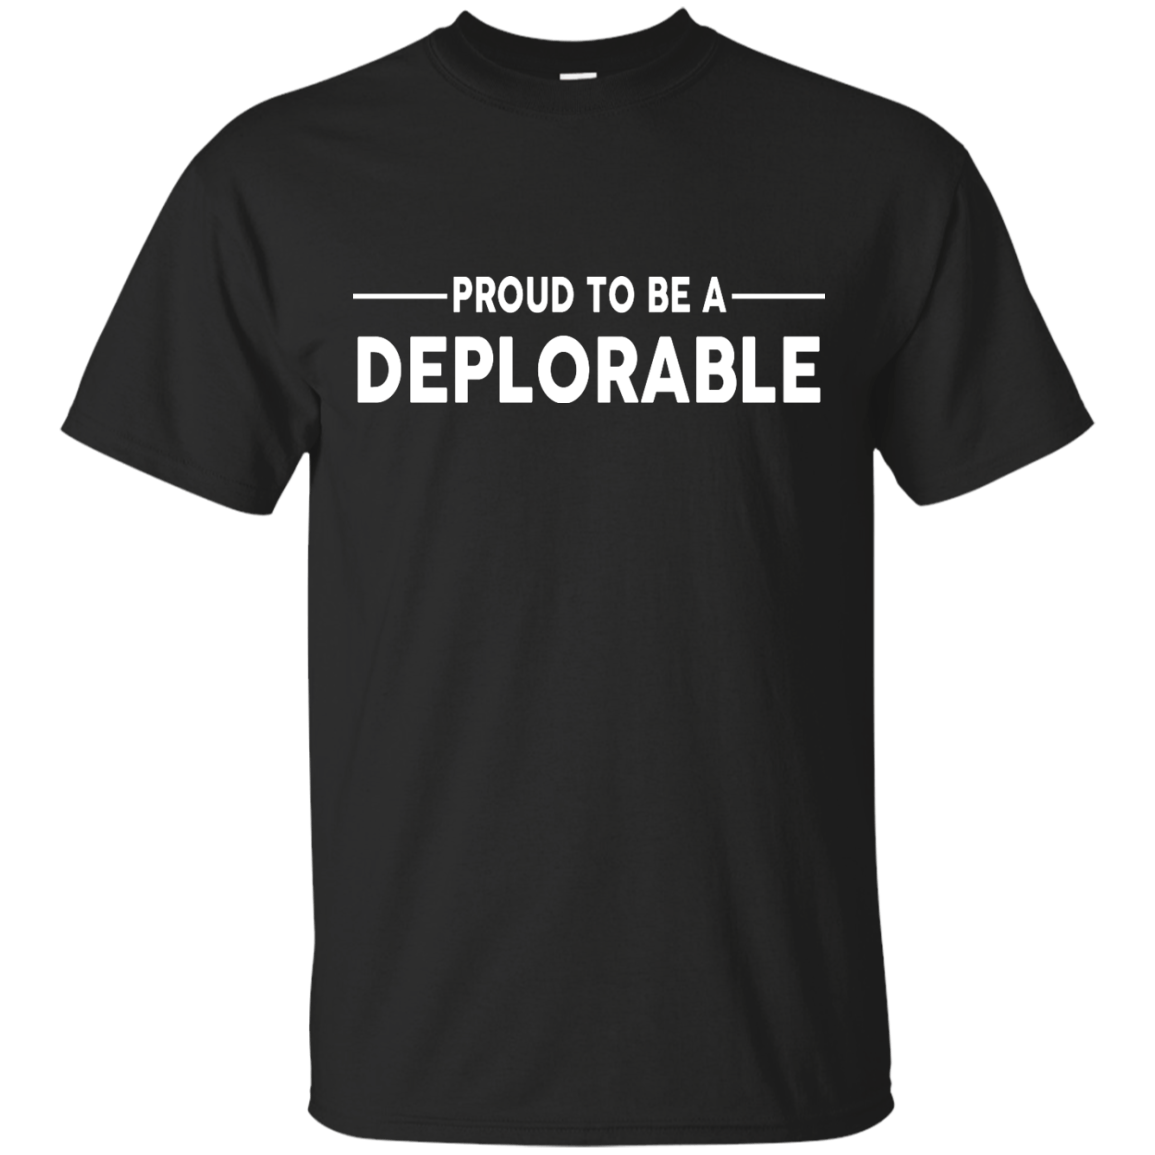 Proud To Be A Deplorable T shirt, Hoodies & Tank top - Vote Trump 2016